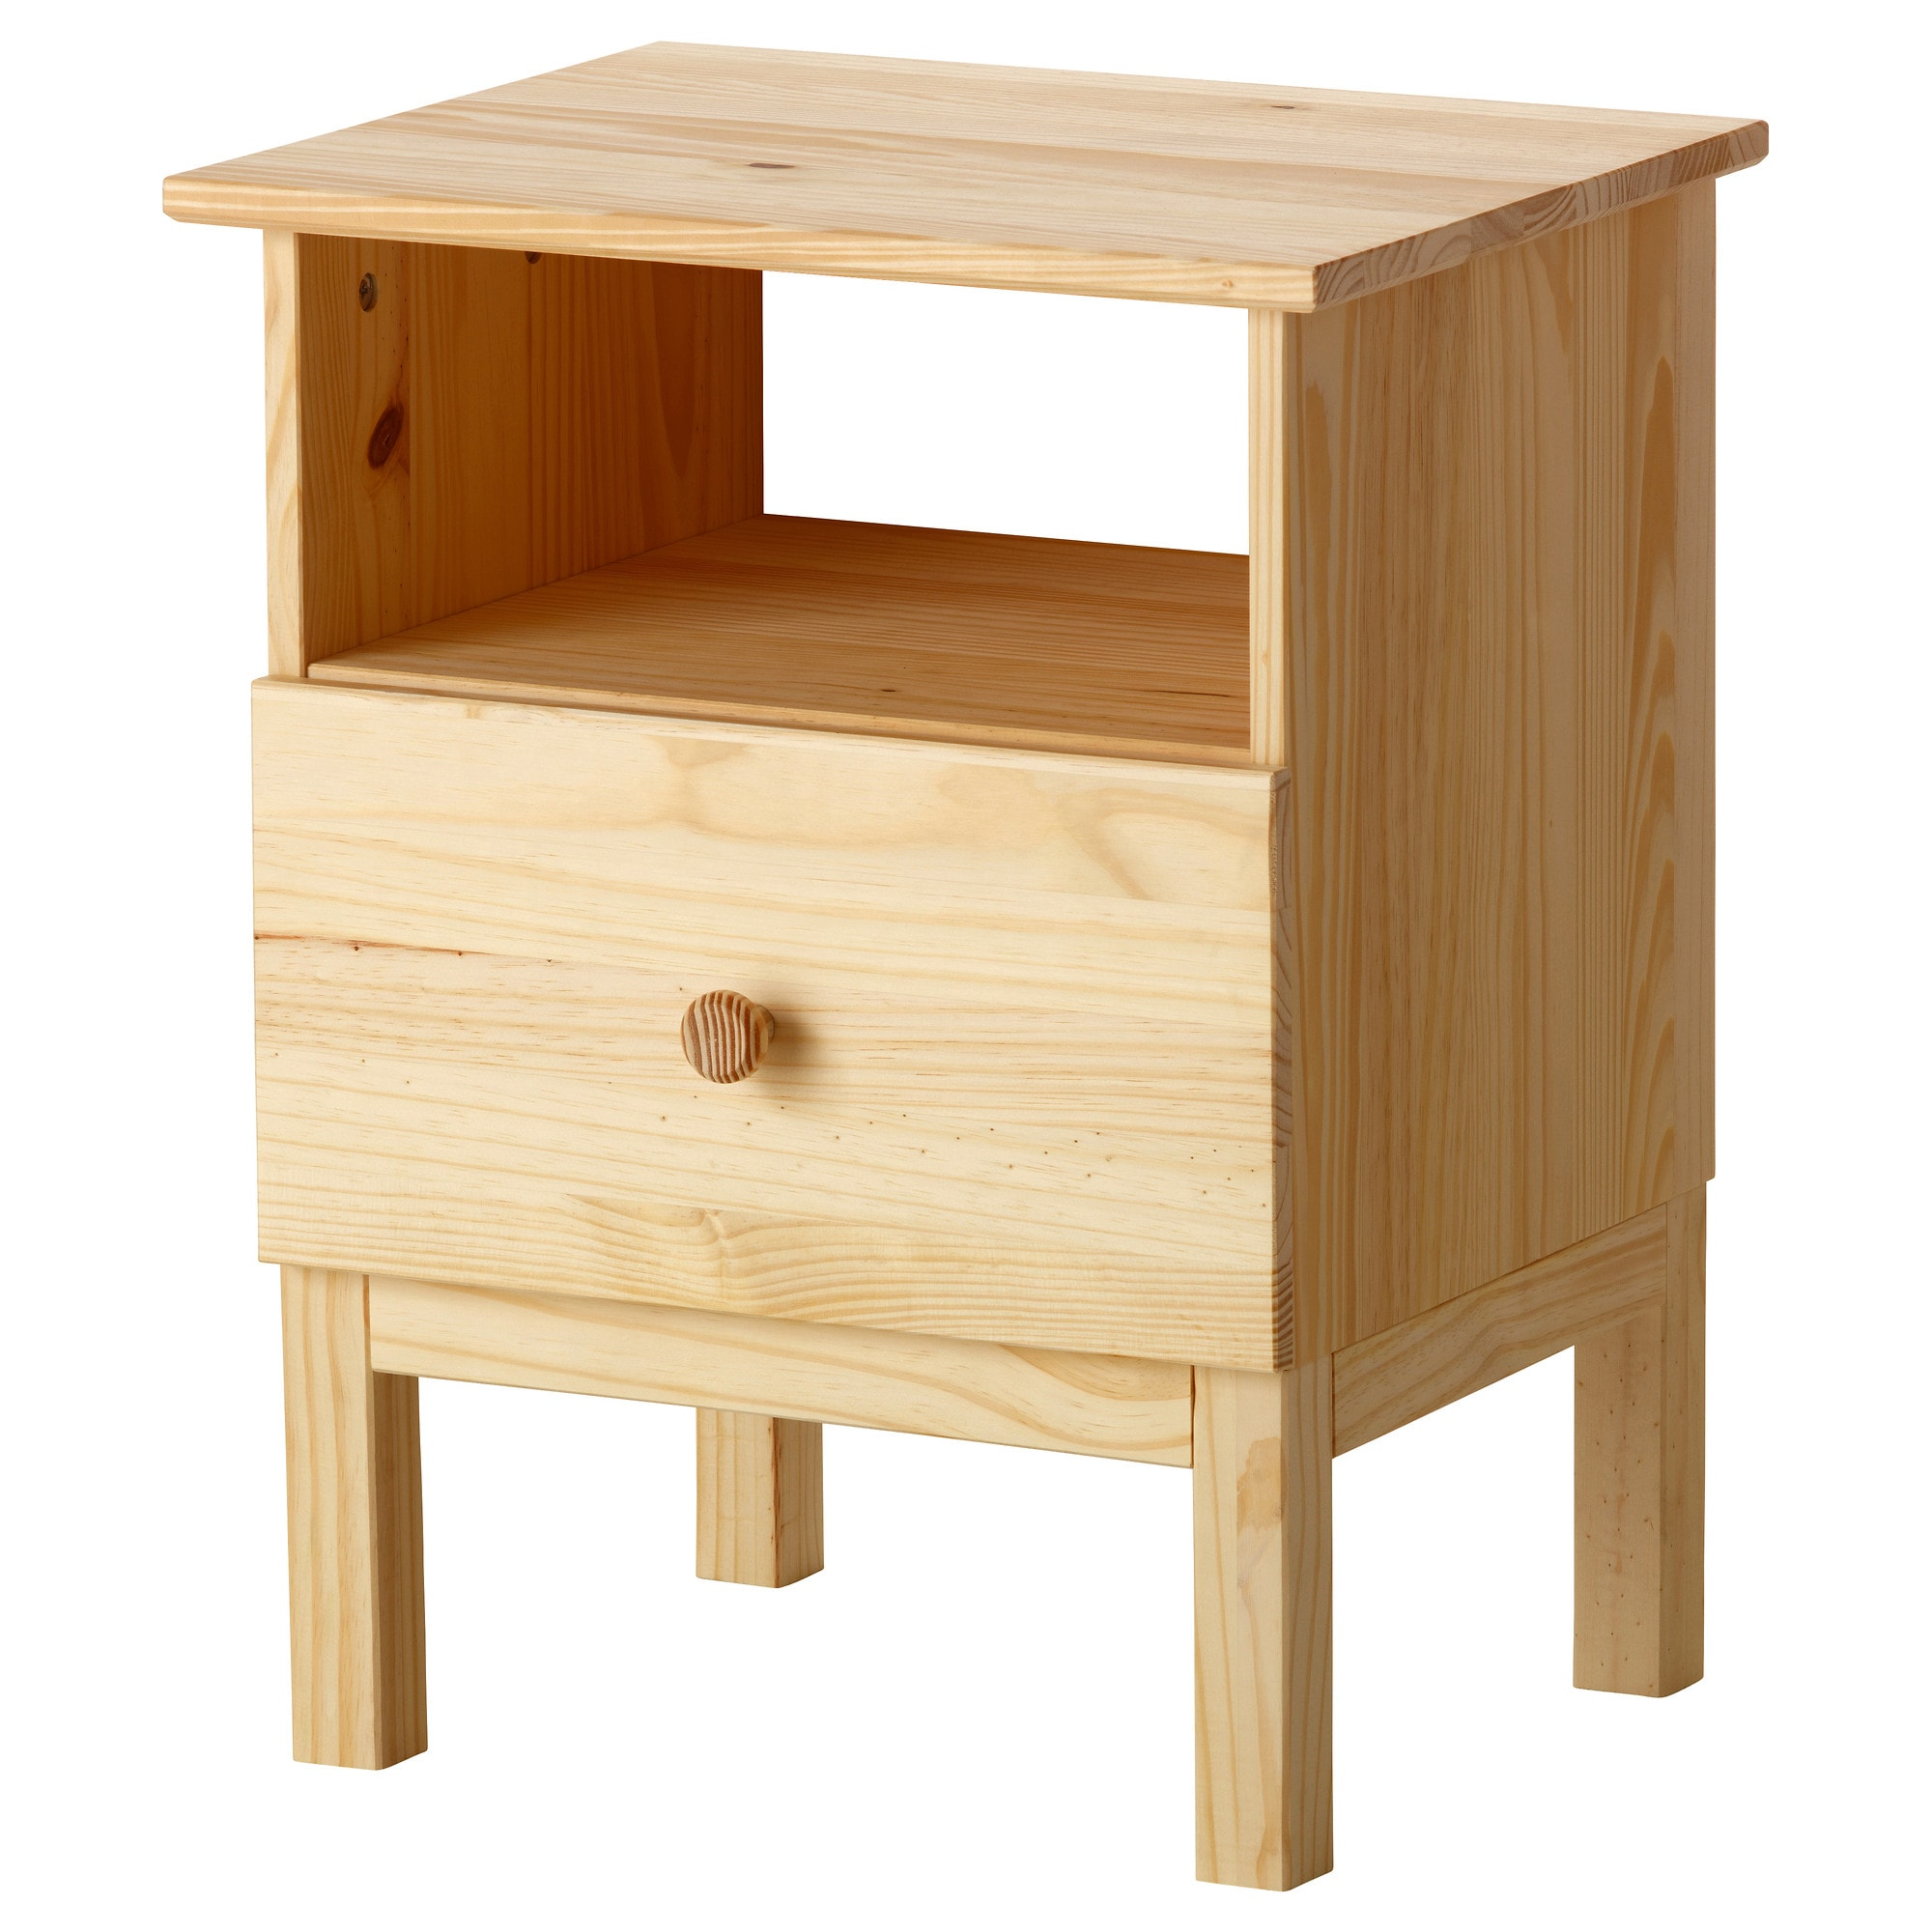 Tiny Nightstand nightstands - ikea